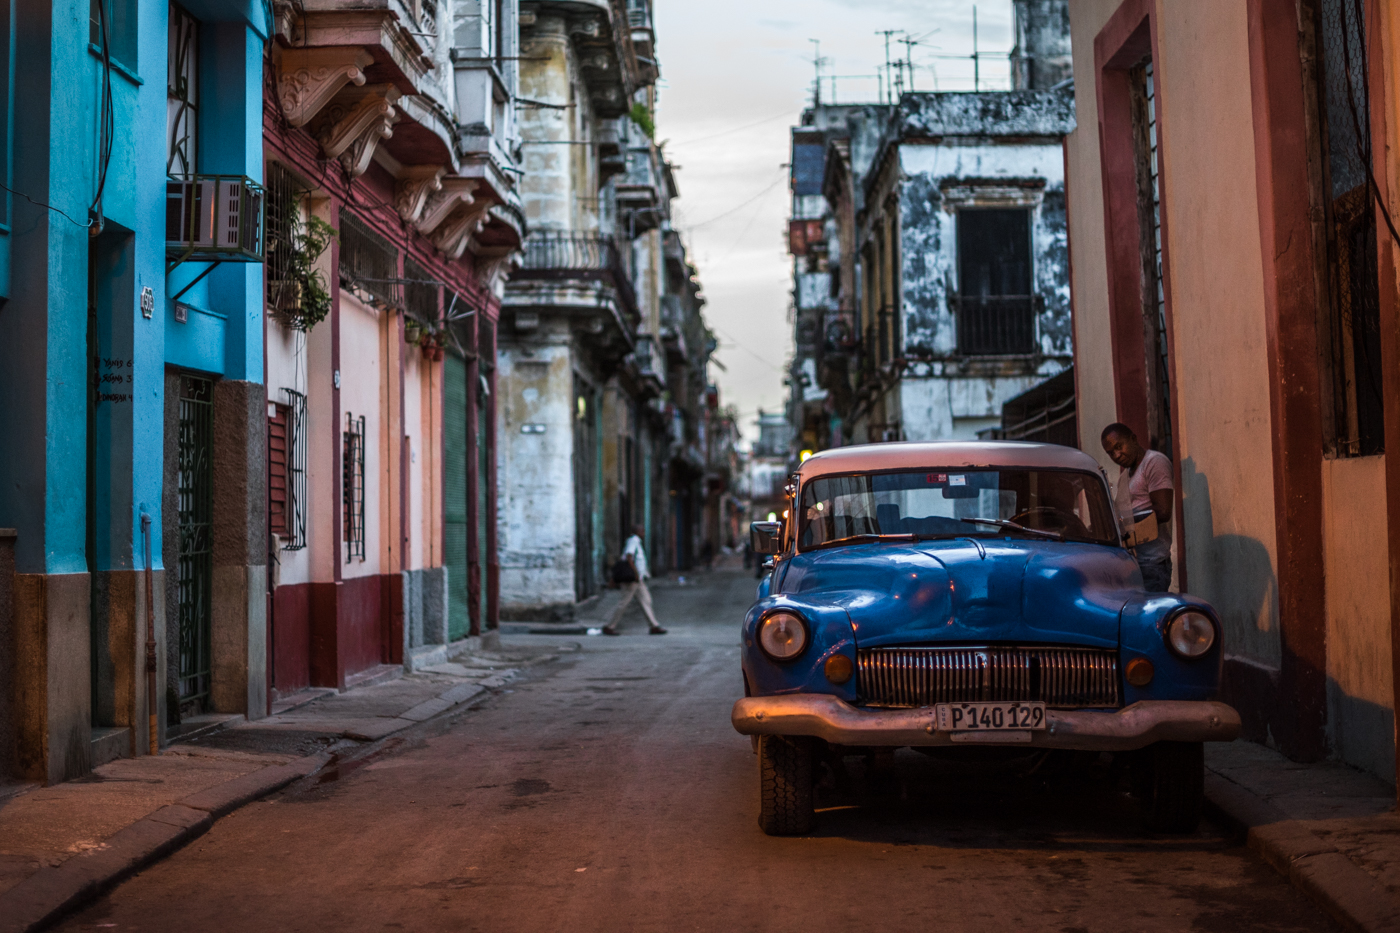 An old classic on the streets of Havana.